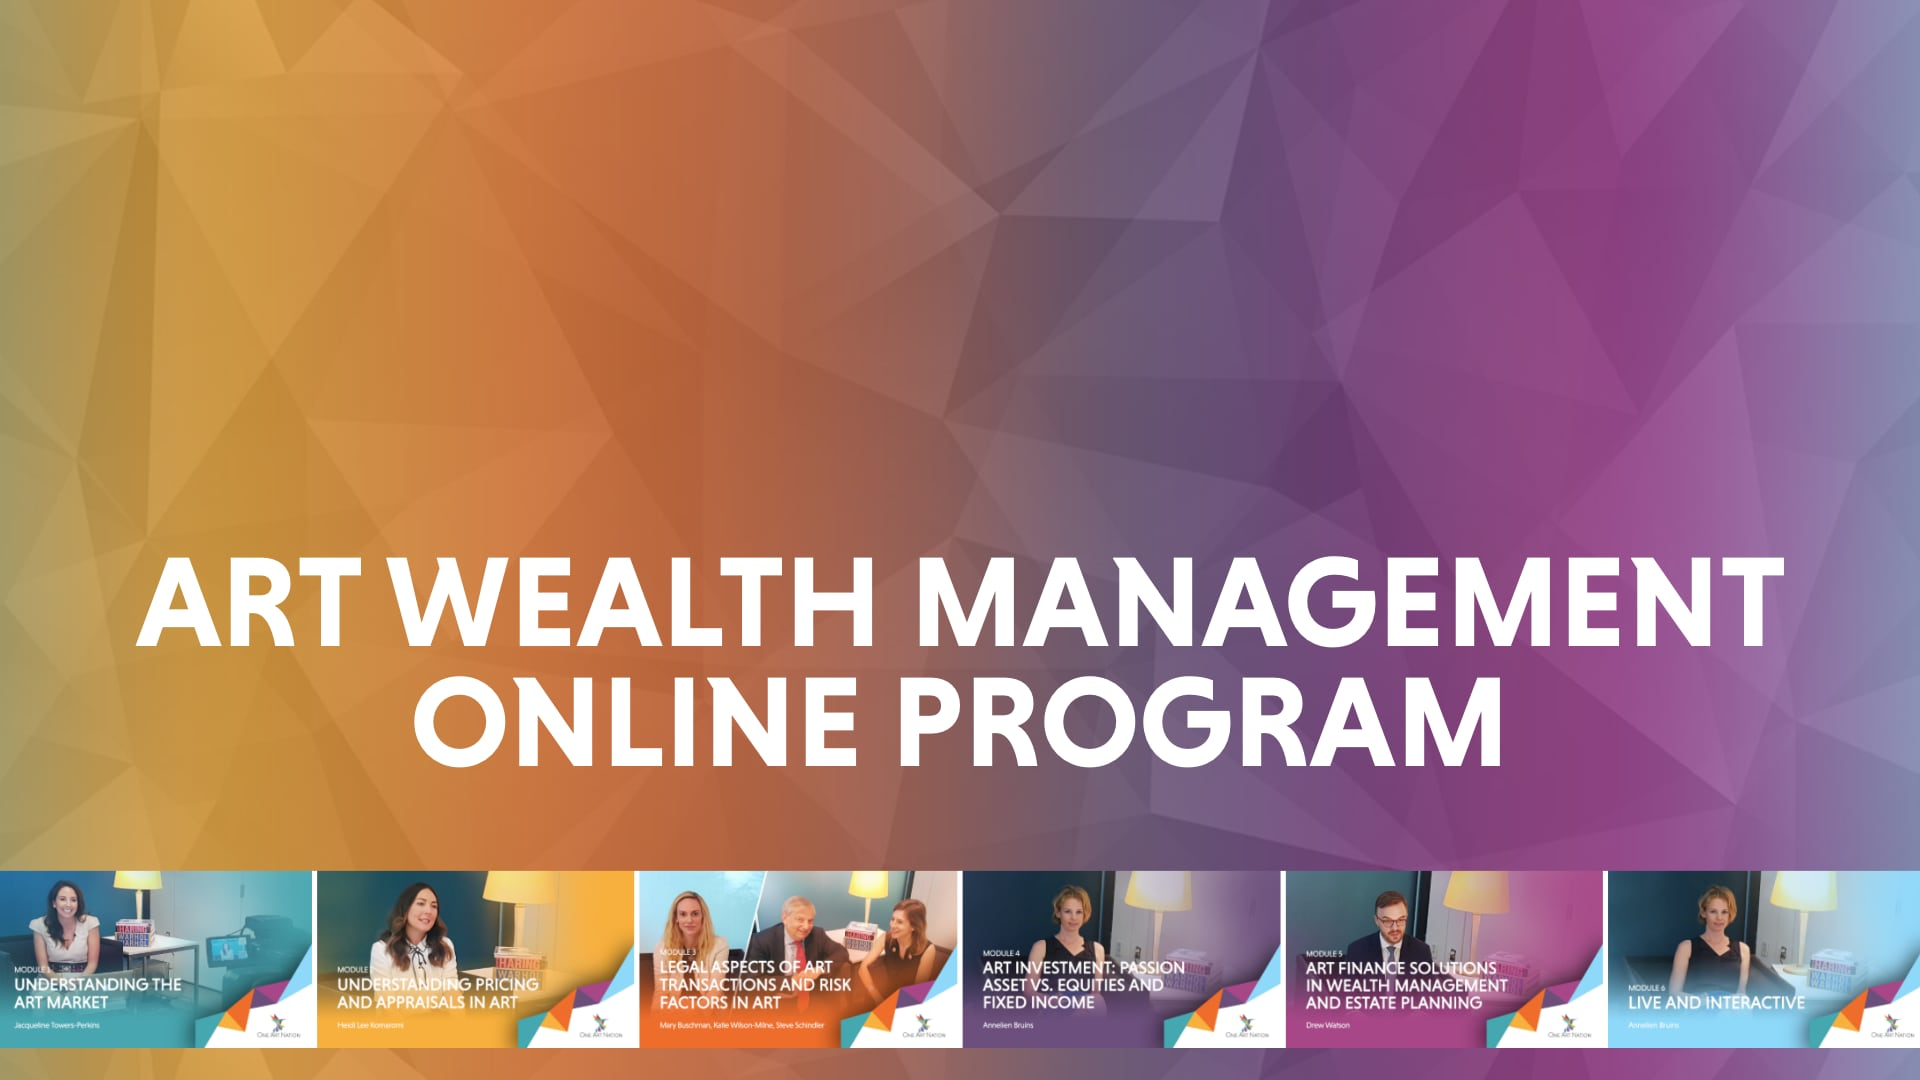 Art Wealth Management Online Program